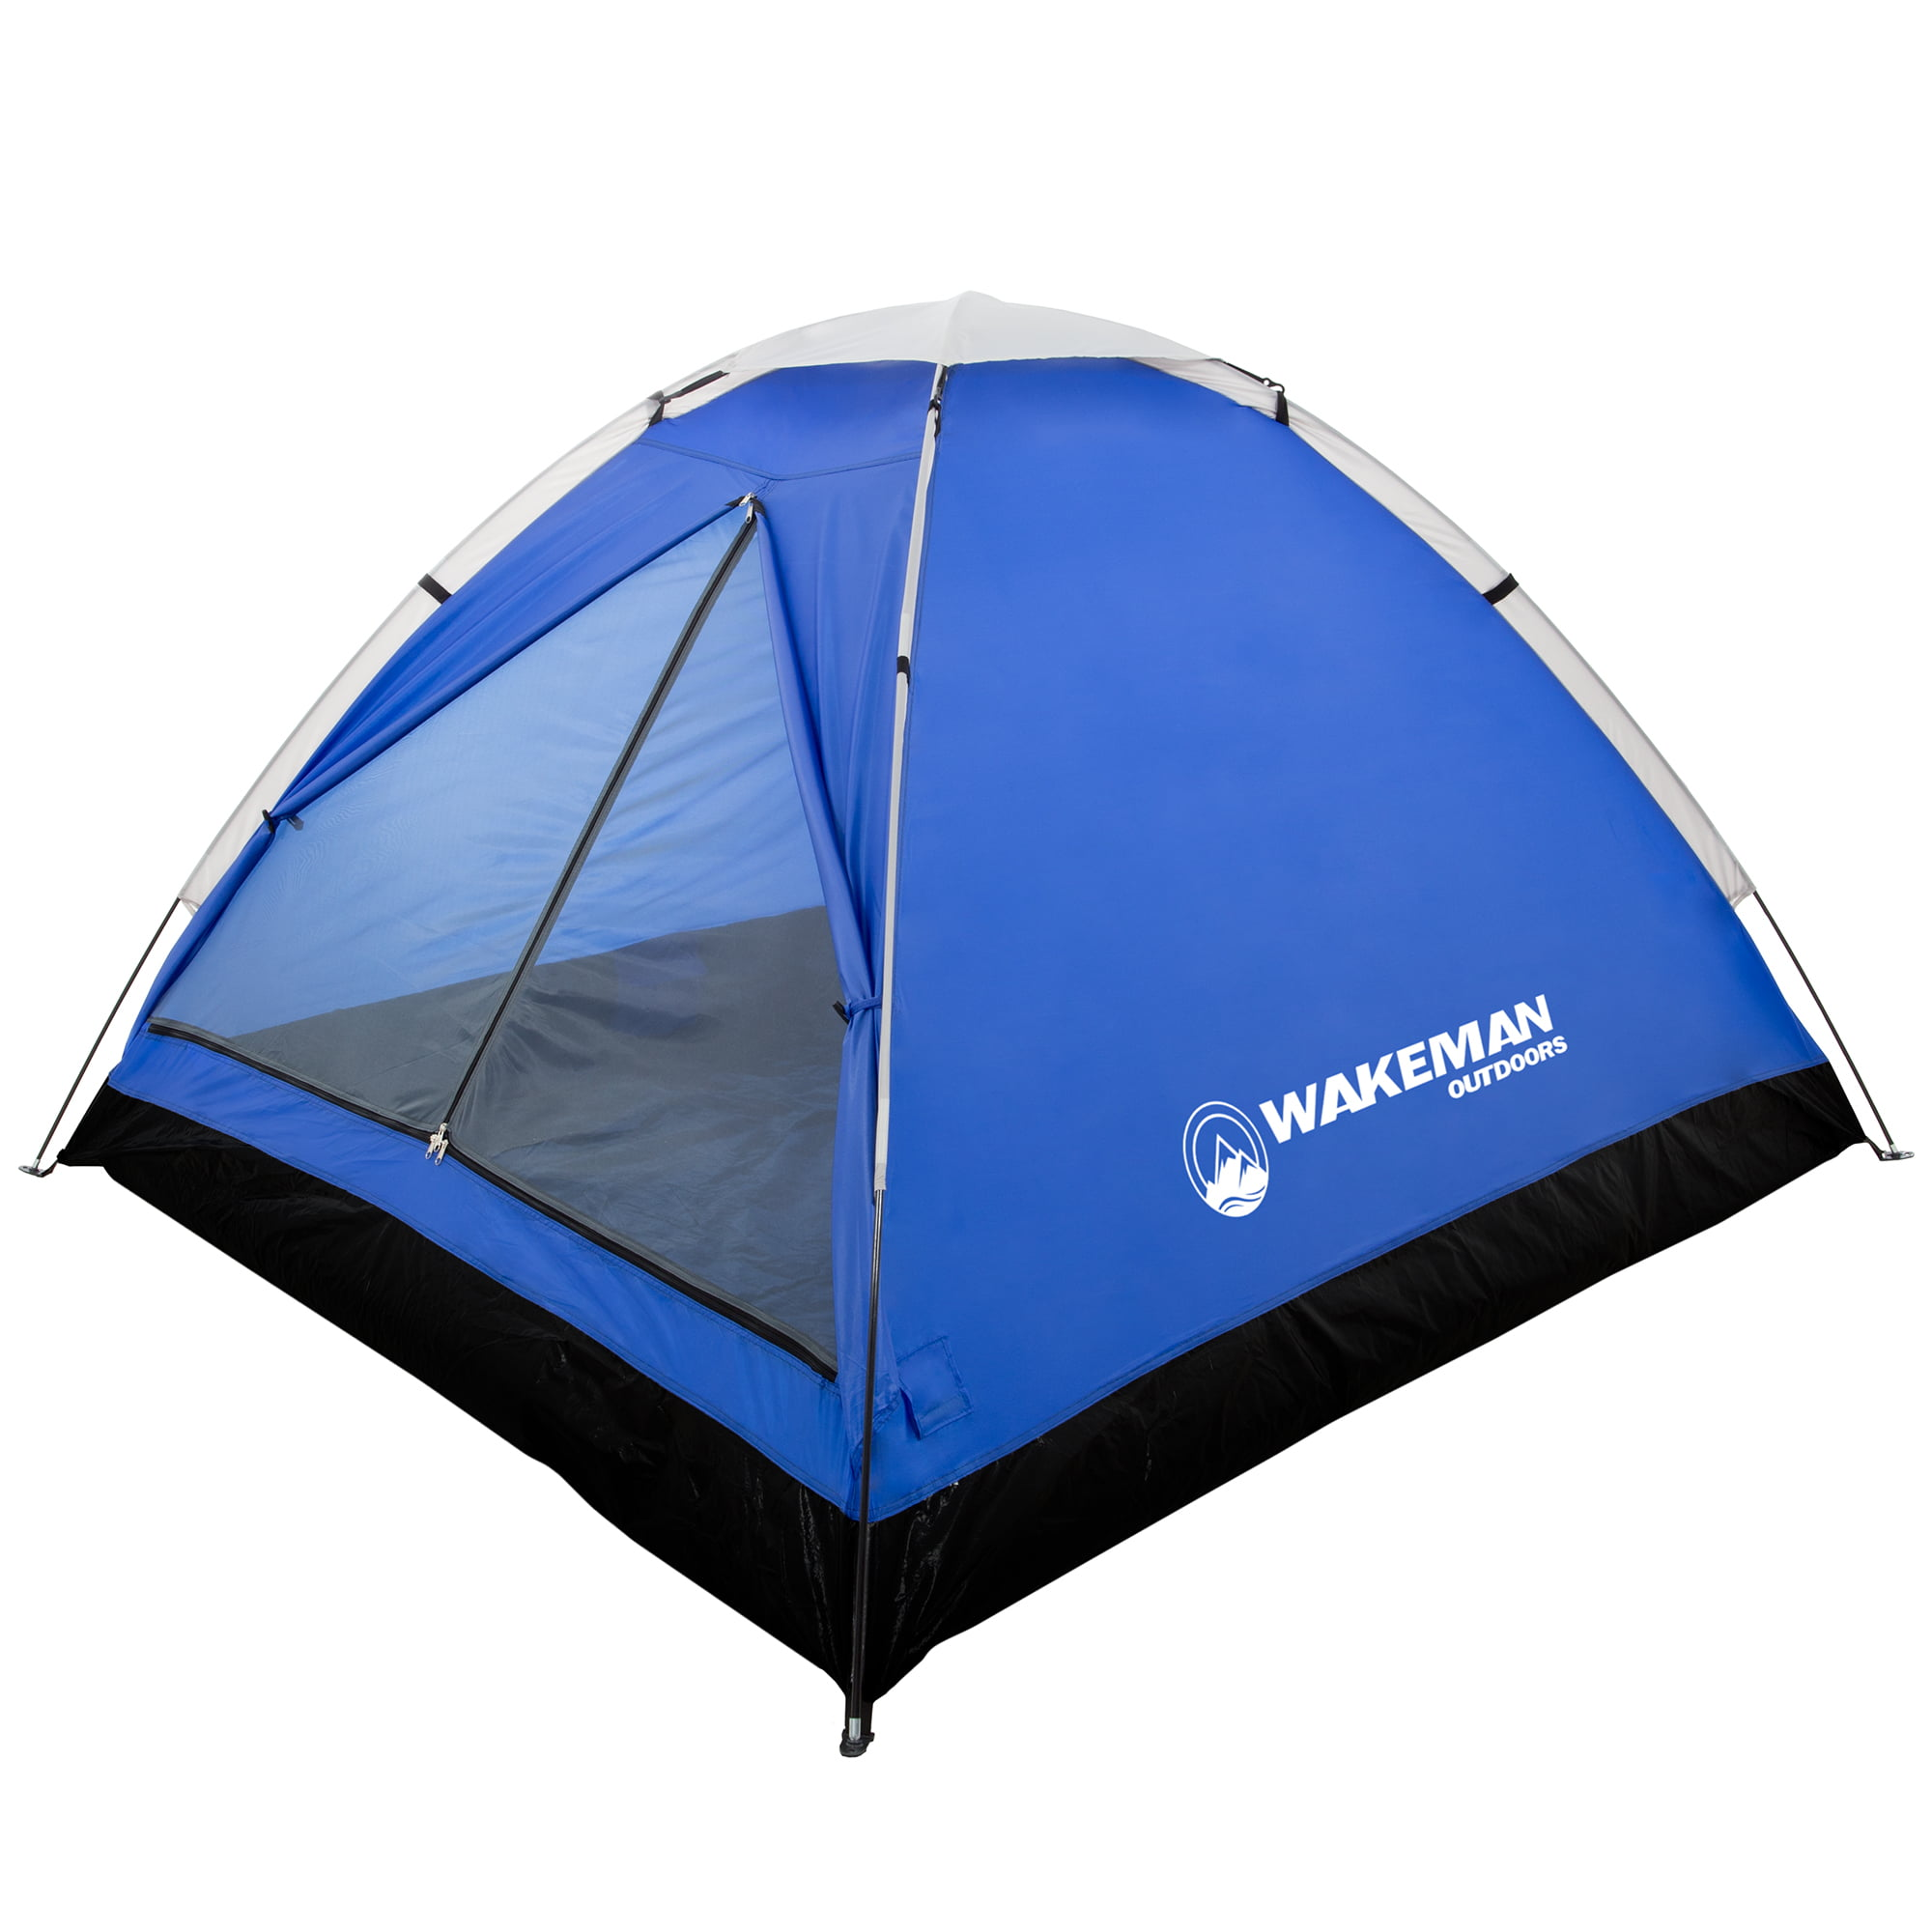 Wakeman 2-Person Tent 75-CMP1021 Water Resistant Dome Tent for Camping with Removable Rain Fly and Carry Bag Lost River 2 Person Tent Outdoors Red//Gray